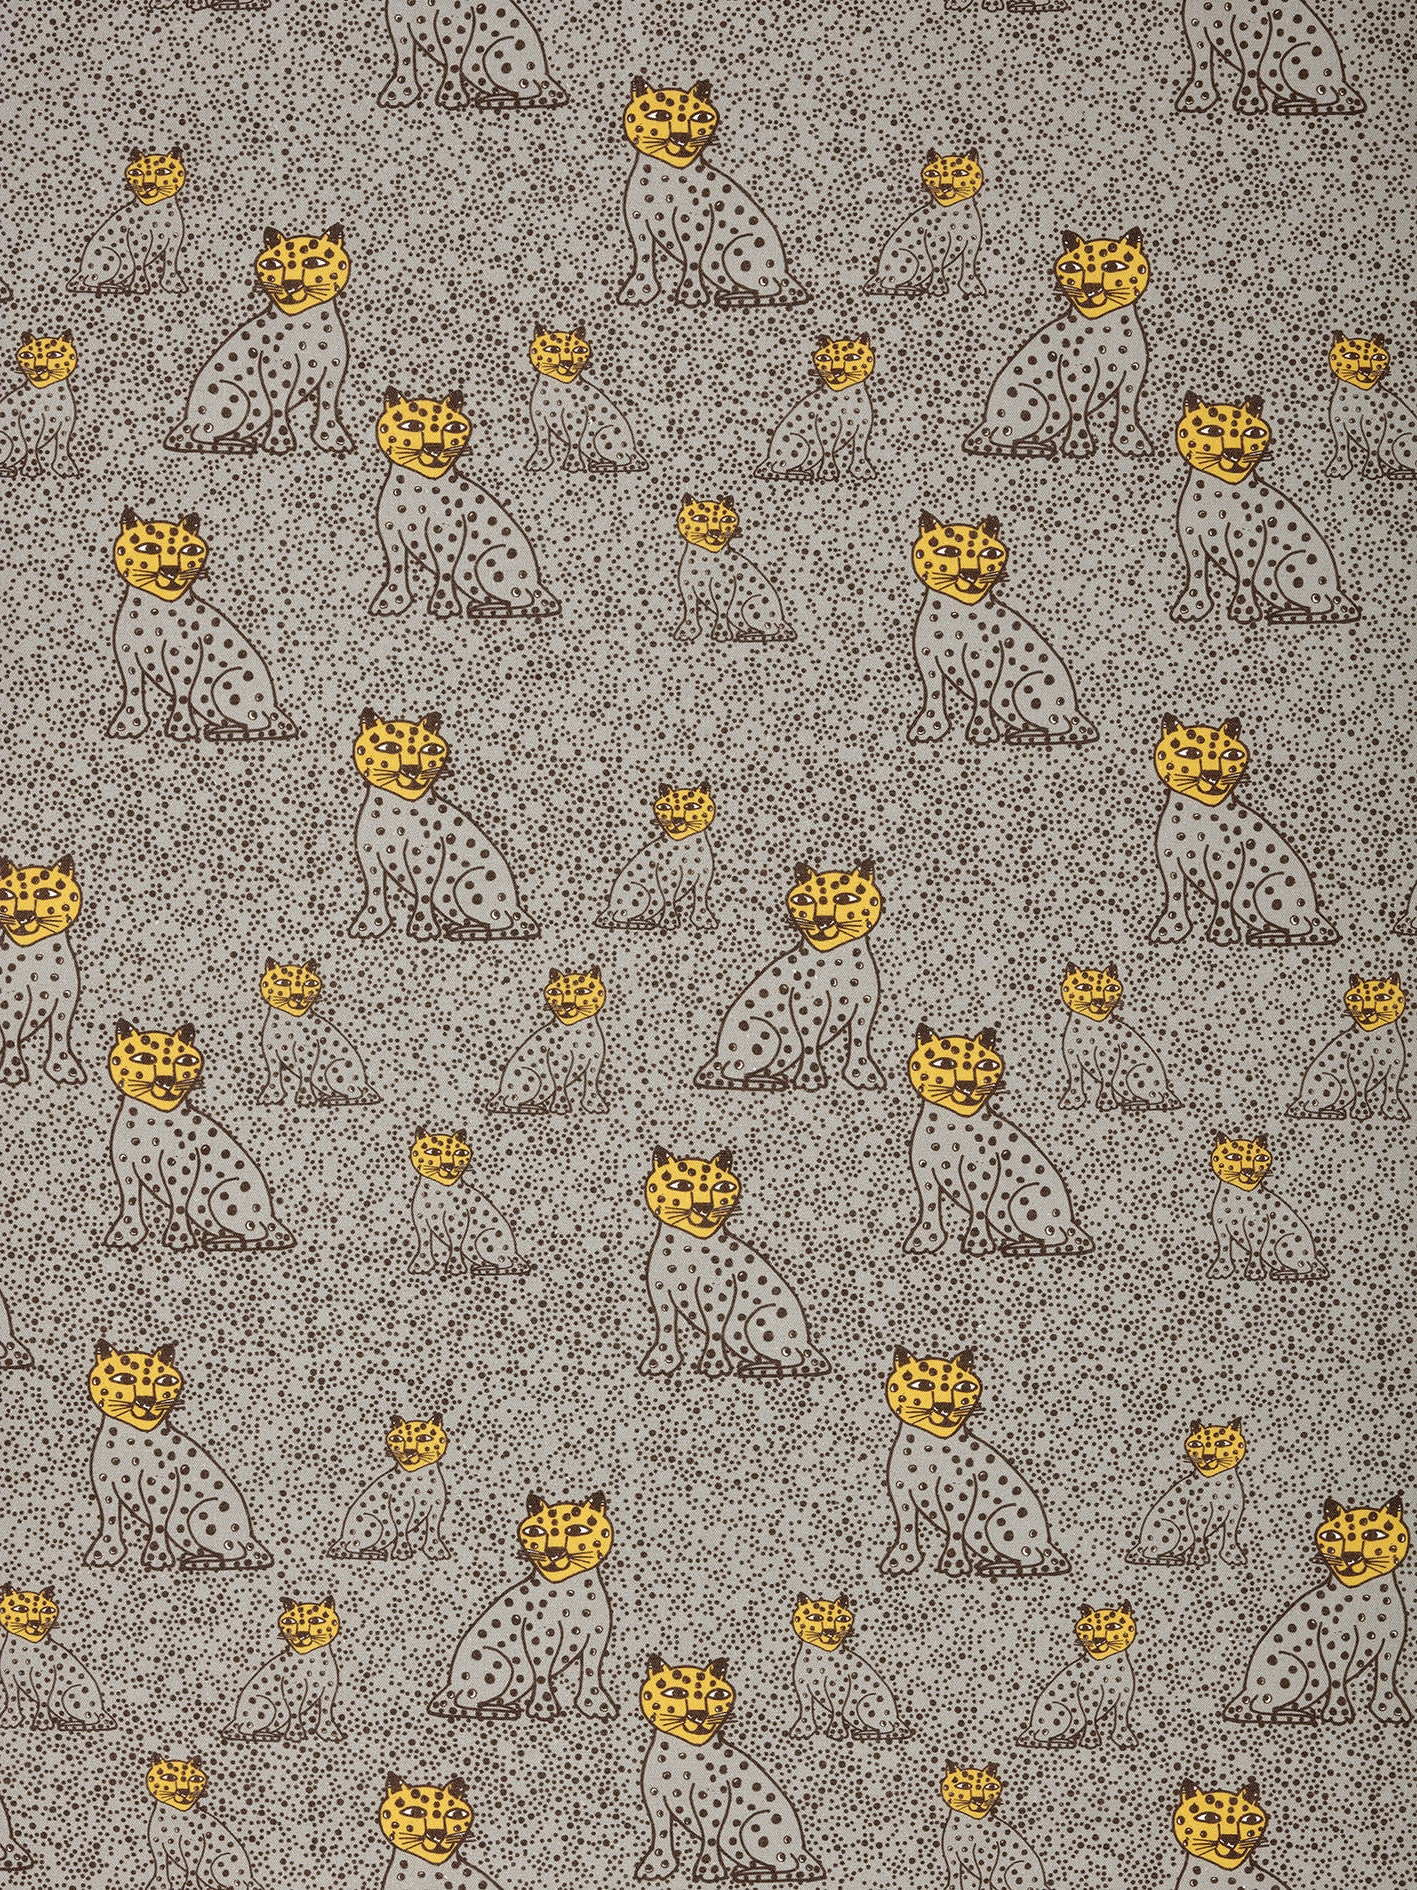 Graphic Leopard Pattern Printed Linen Cotton Canvas Home Decor Fabric by the meter or the yard for curtains, blinds and upholstery in Light Dove Grey & Saffron Yellow ships from Canada (USA)